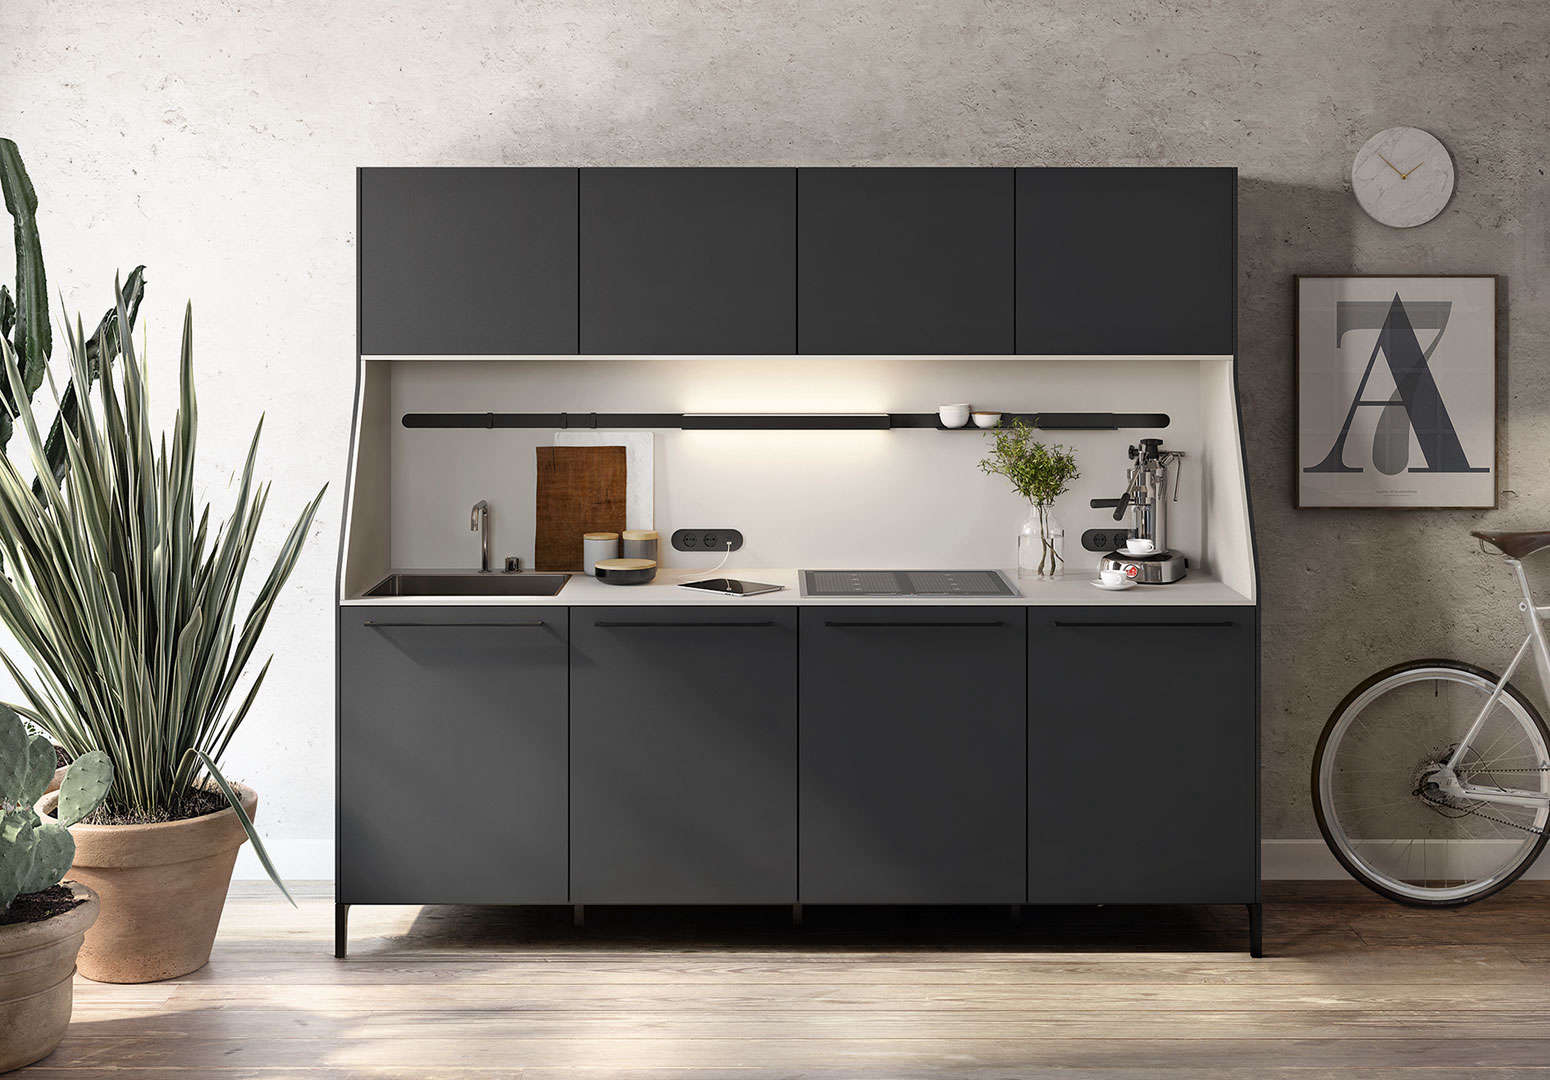 Standout German-designed minimalist kitchen, the SieMatic 29 is modeled after a traditional sideboard | Remodelista